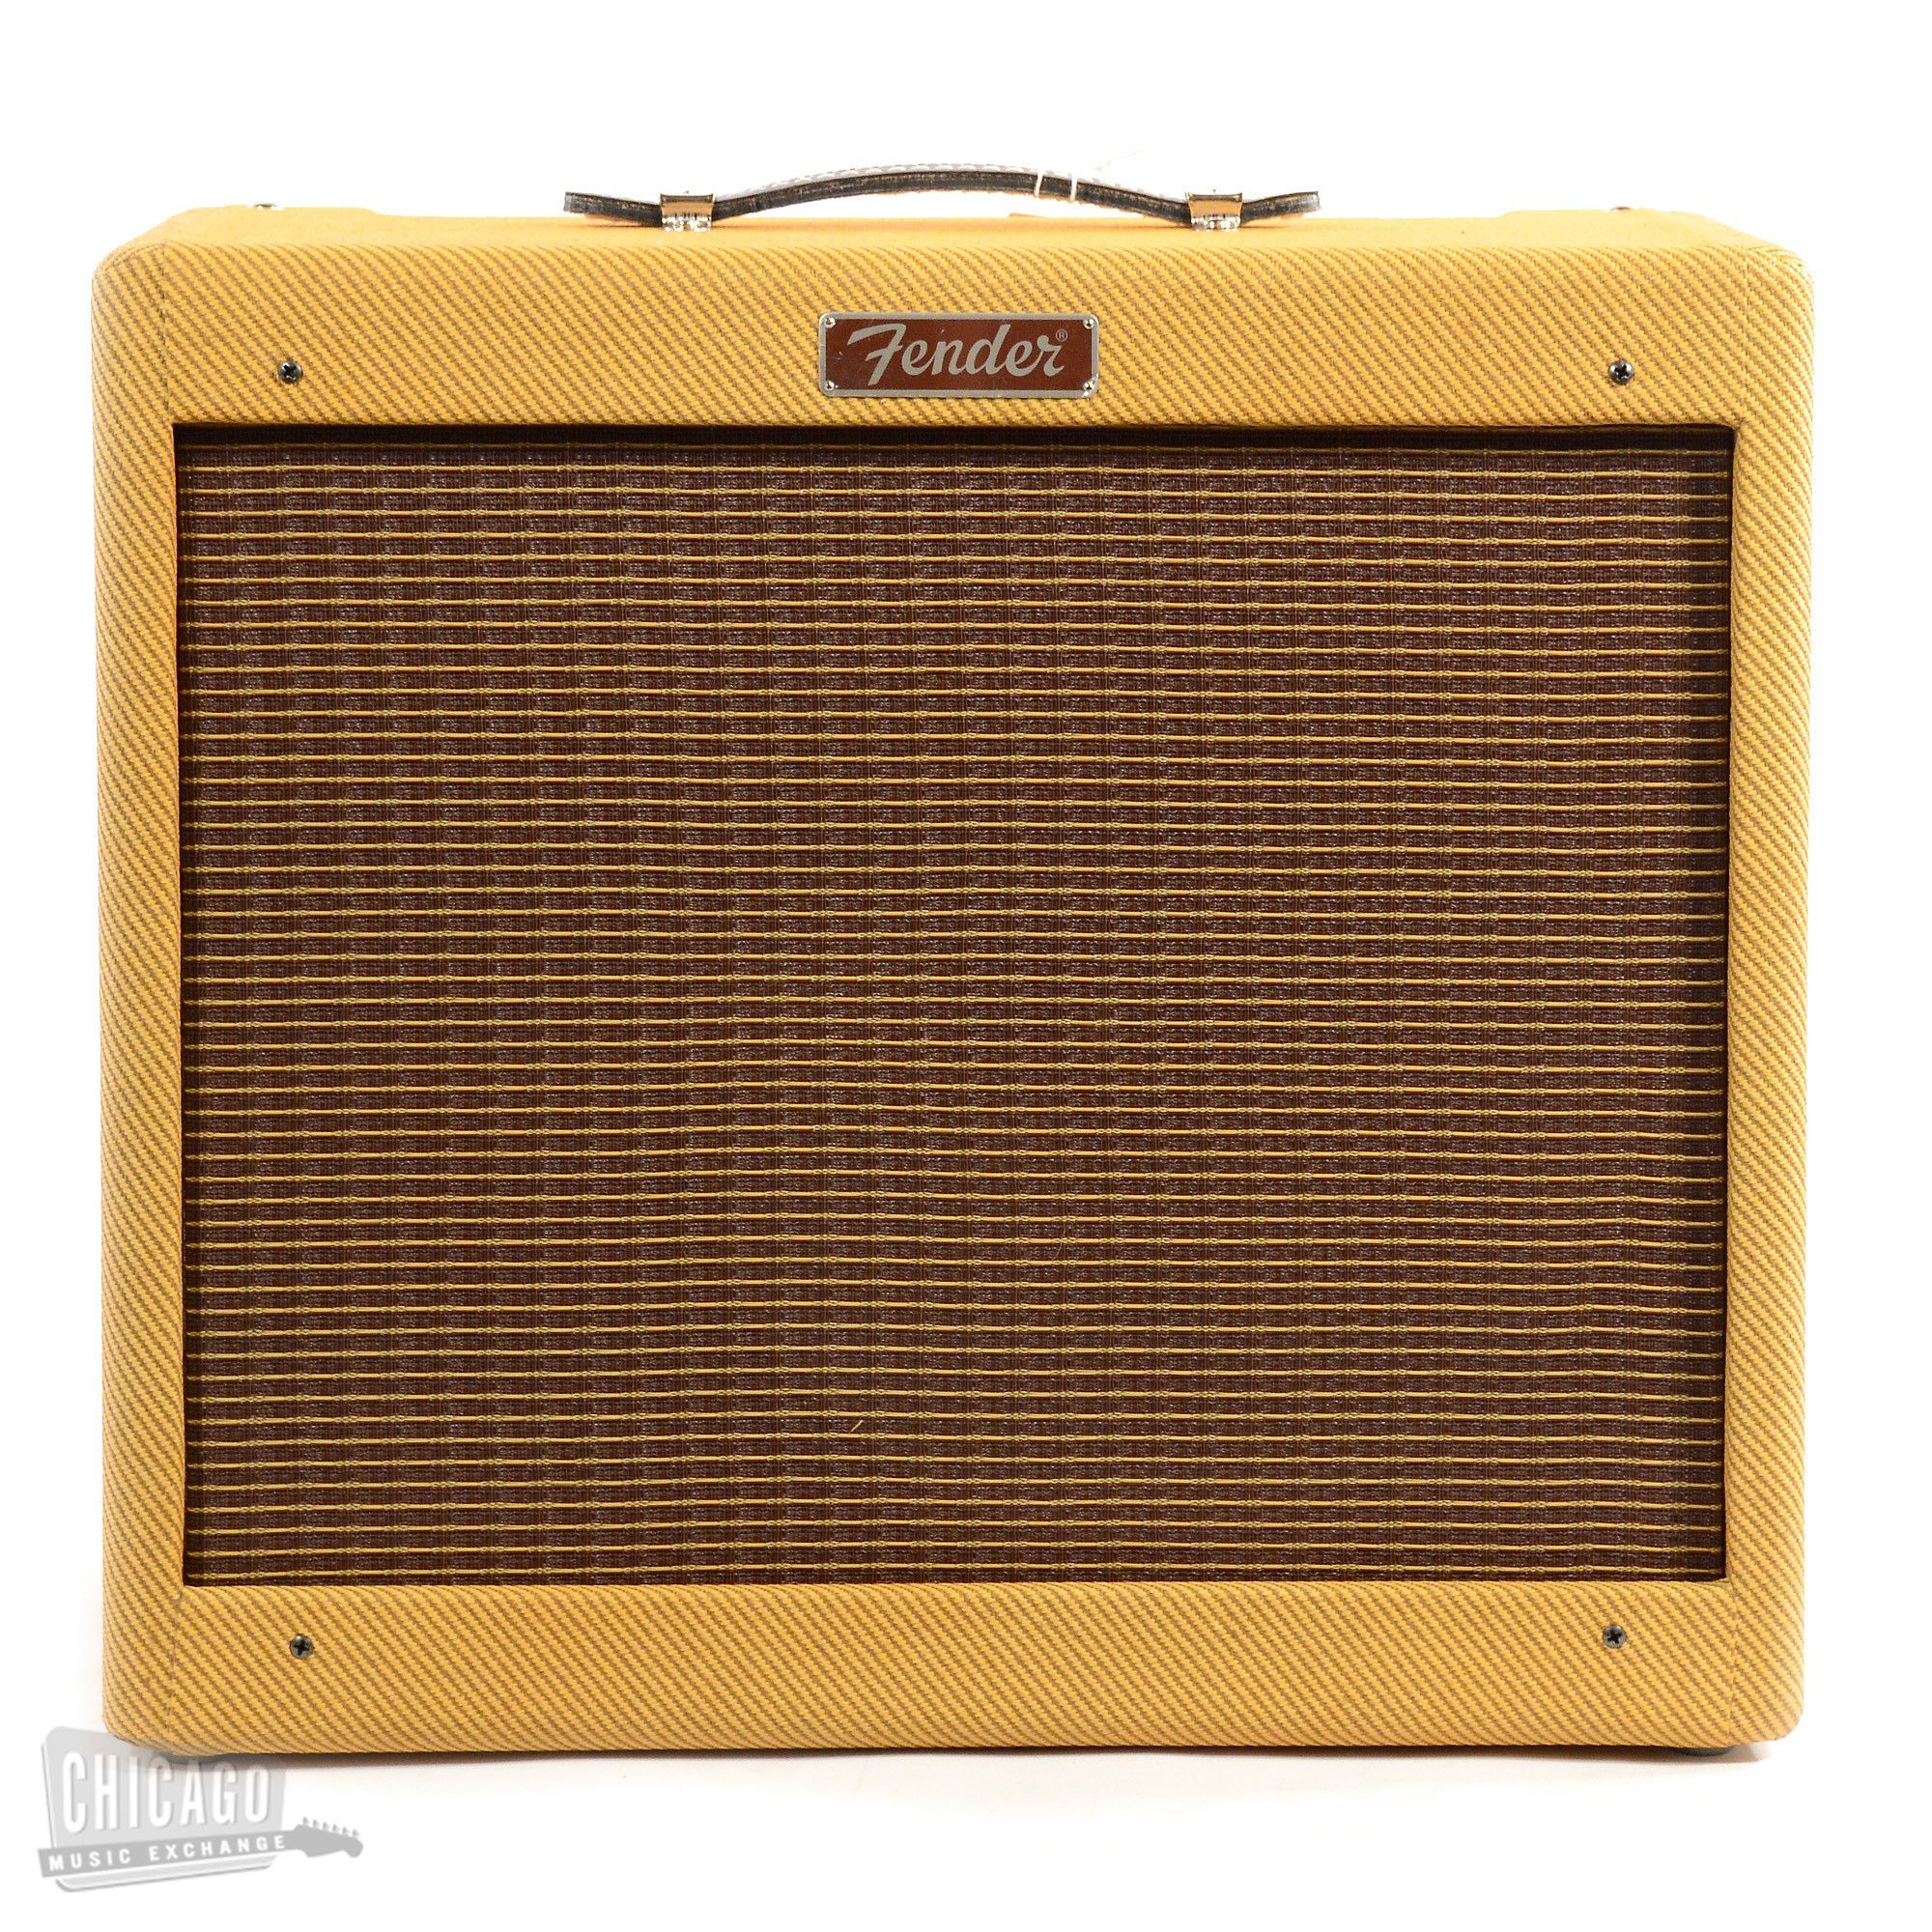 Fender Blues Jr LTD C12-N Lacquered Tweed from Chicago Music